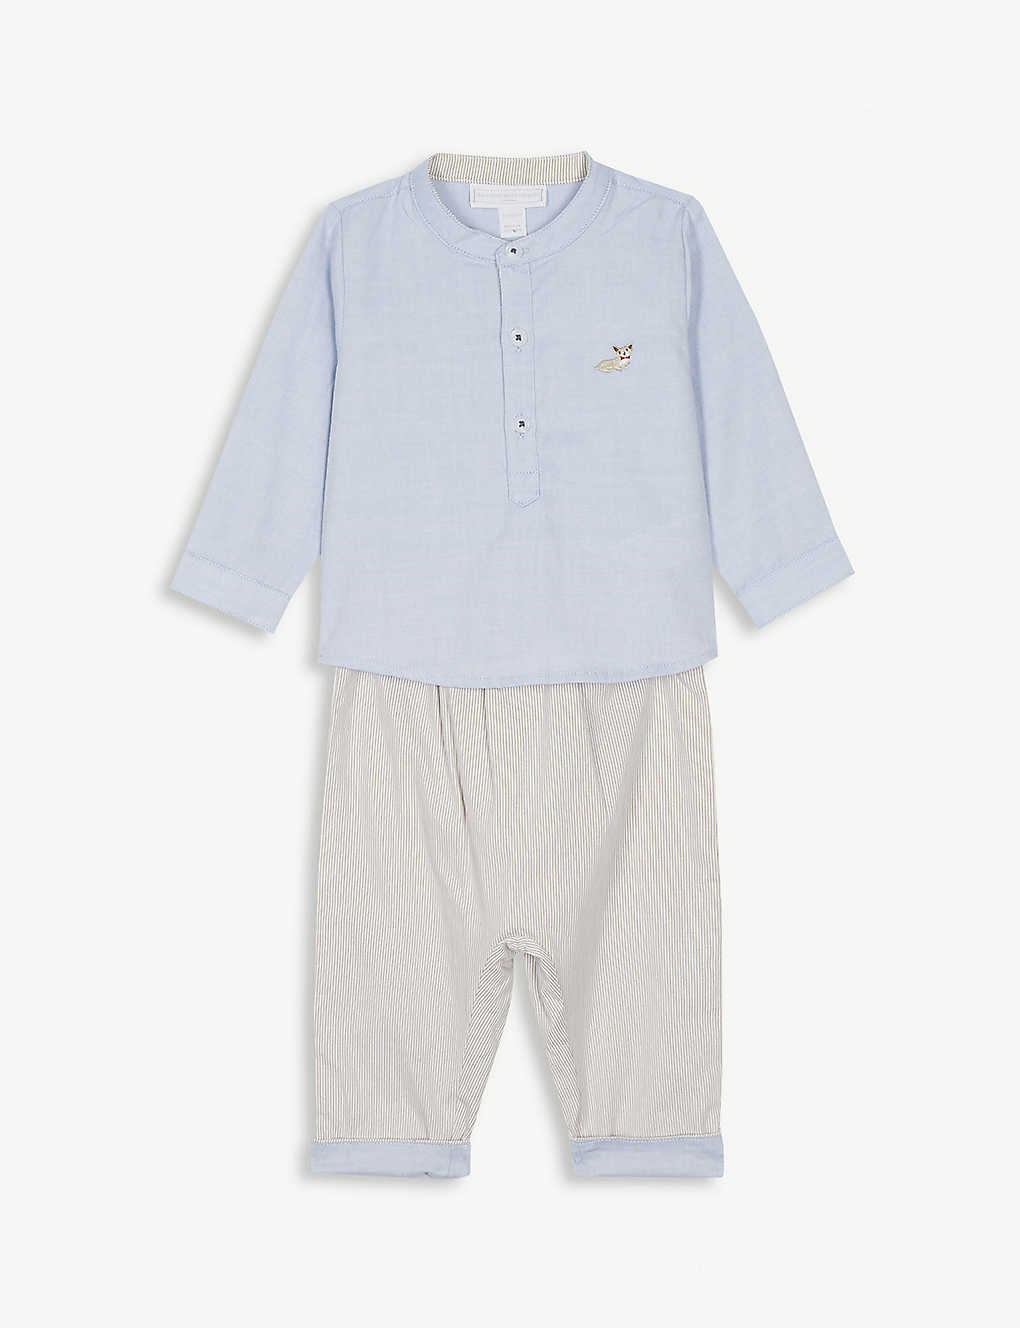 bb86832f41ebd THE LITTLE WHITE COMPANY Corgi shirt and trouser set 0-24 months